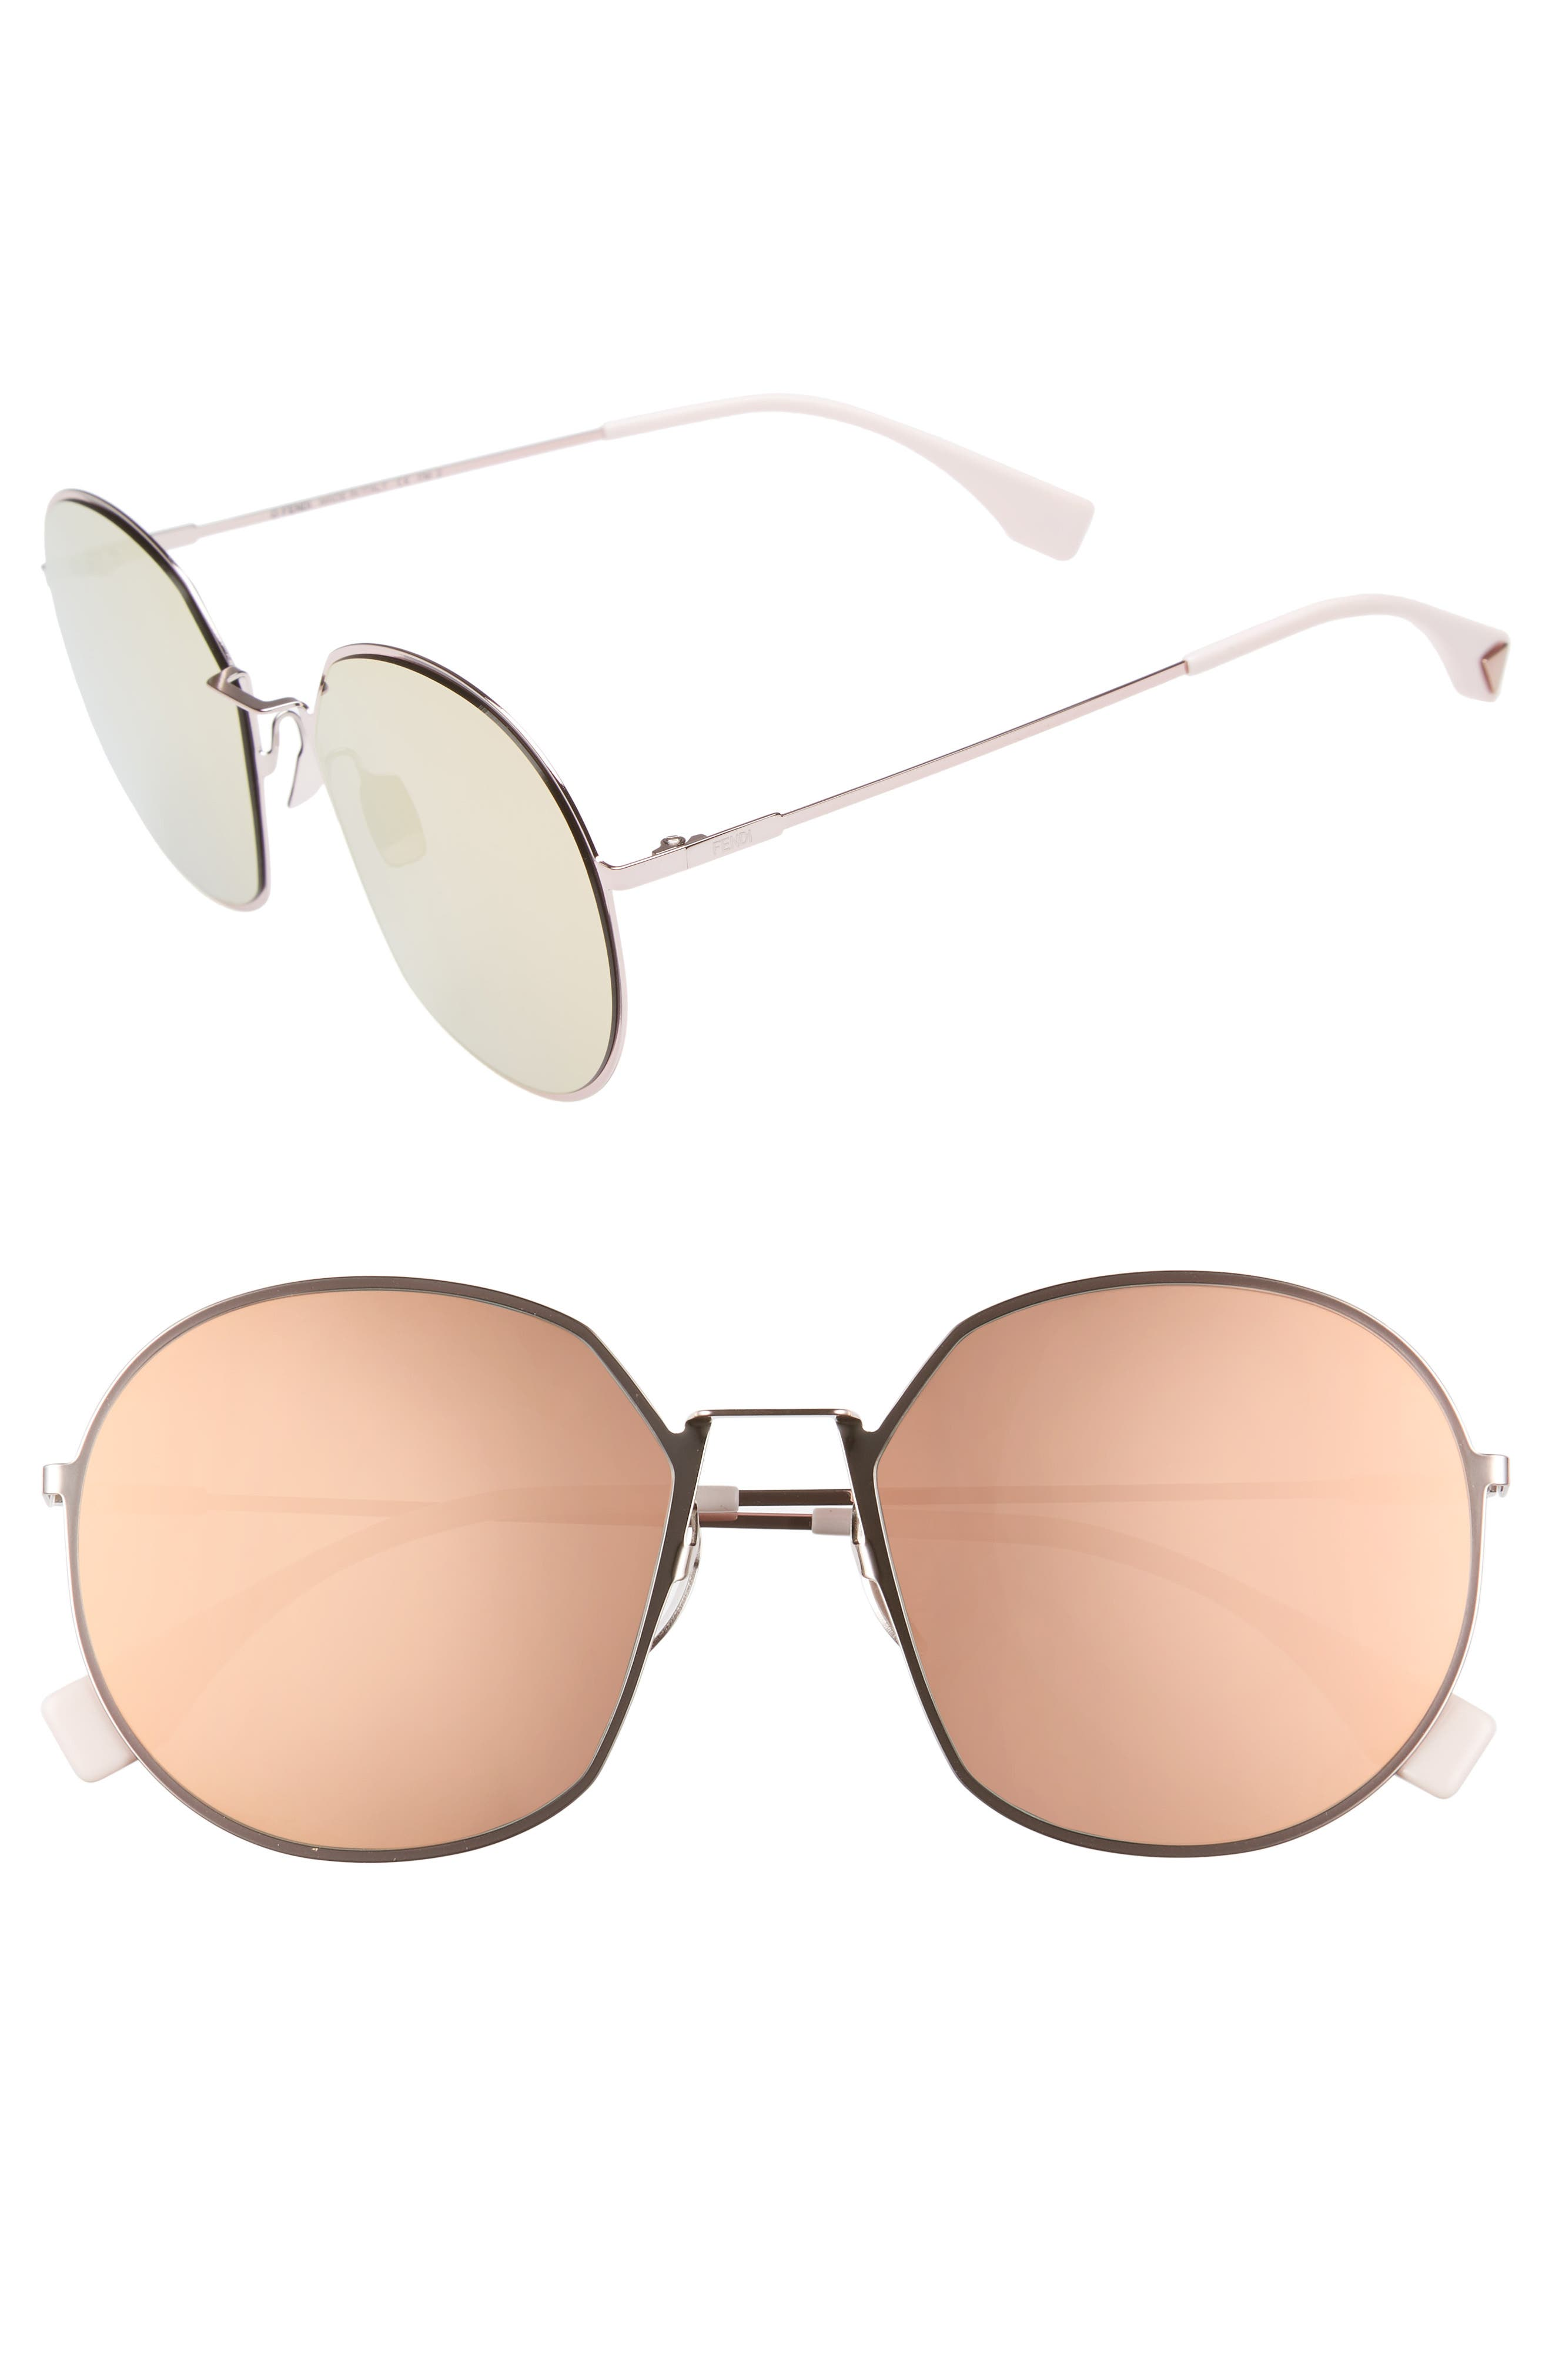 59mm Round Special Fit Sunglasses,                             Main thumbnail 3, color,